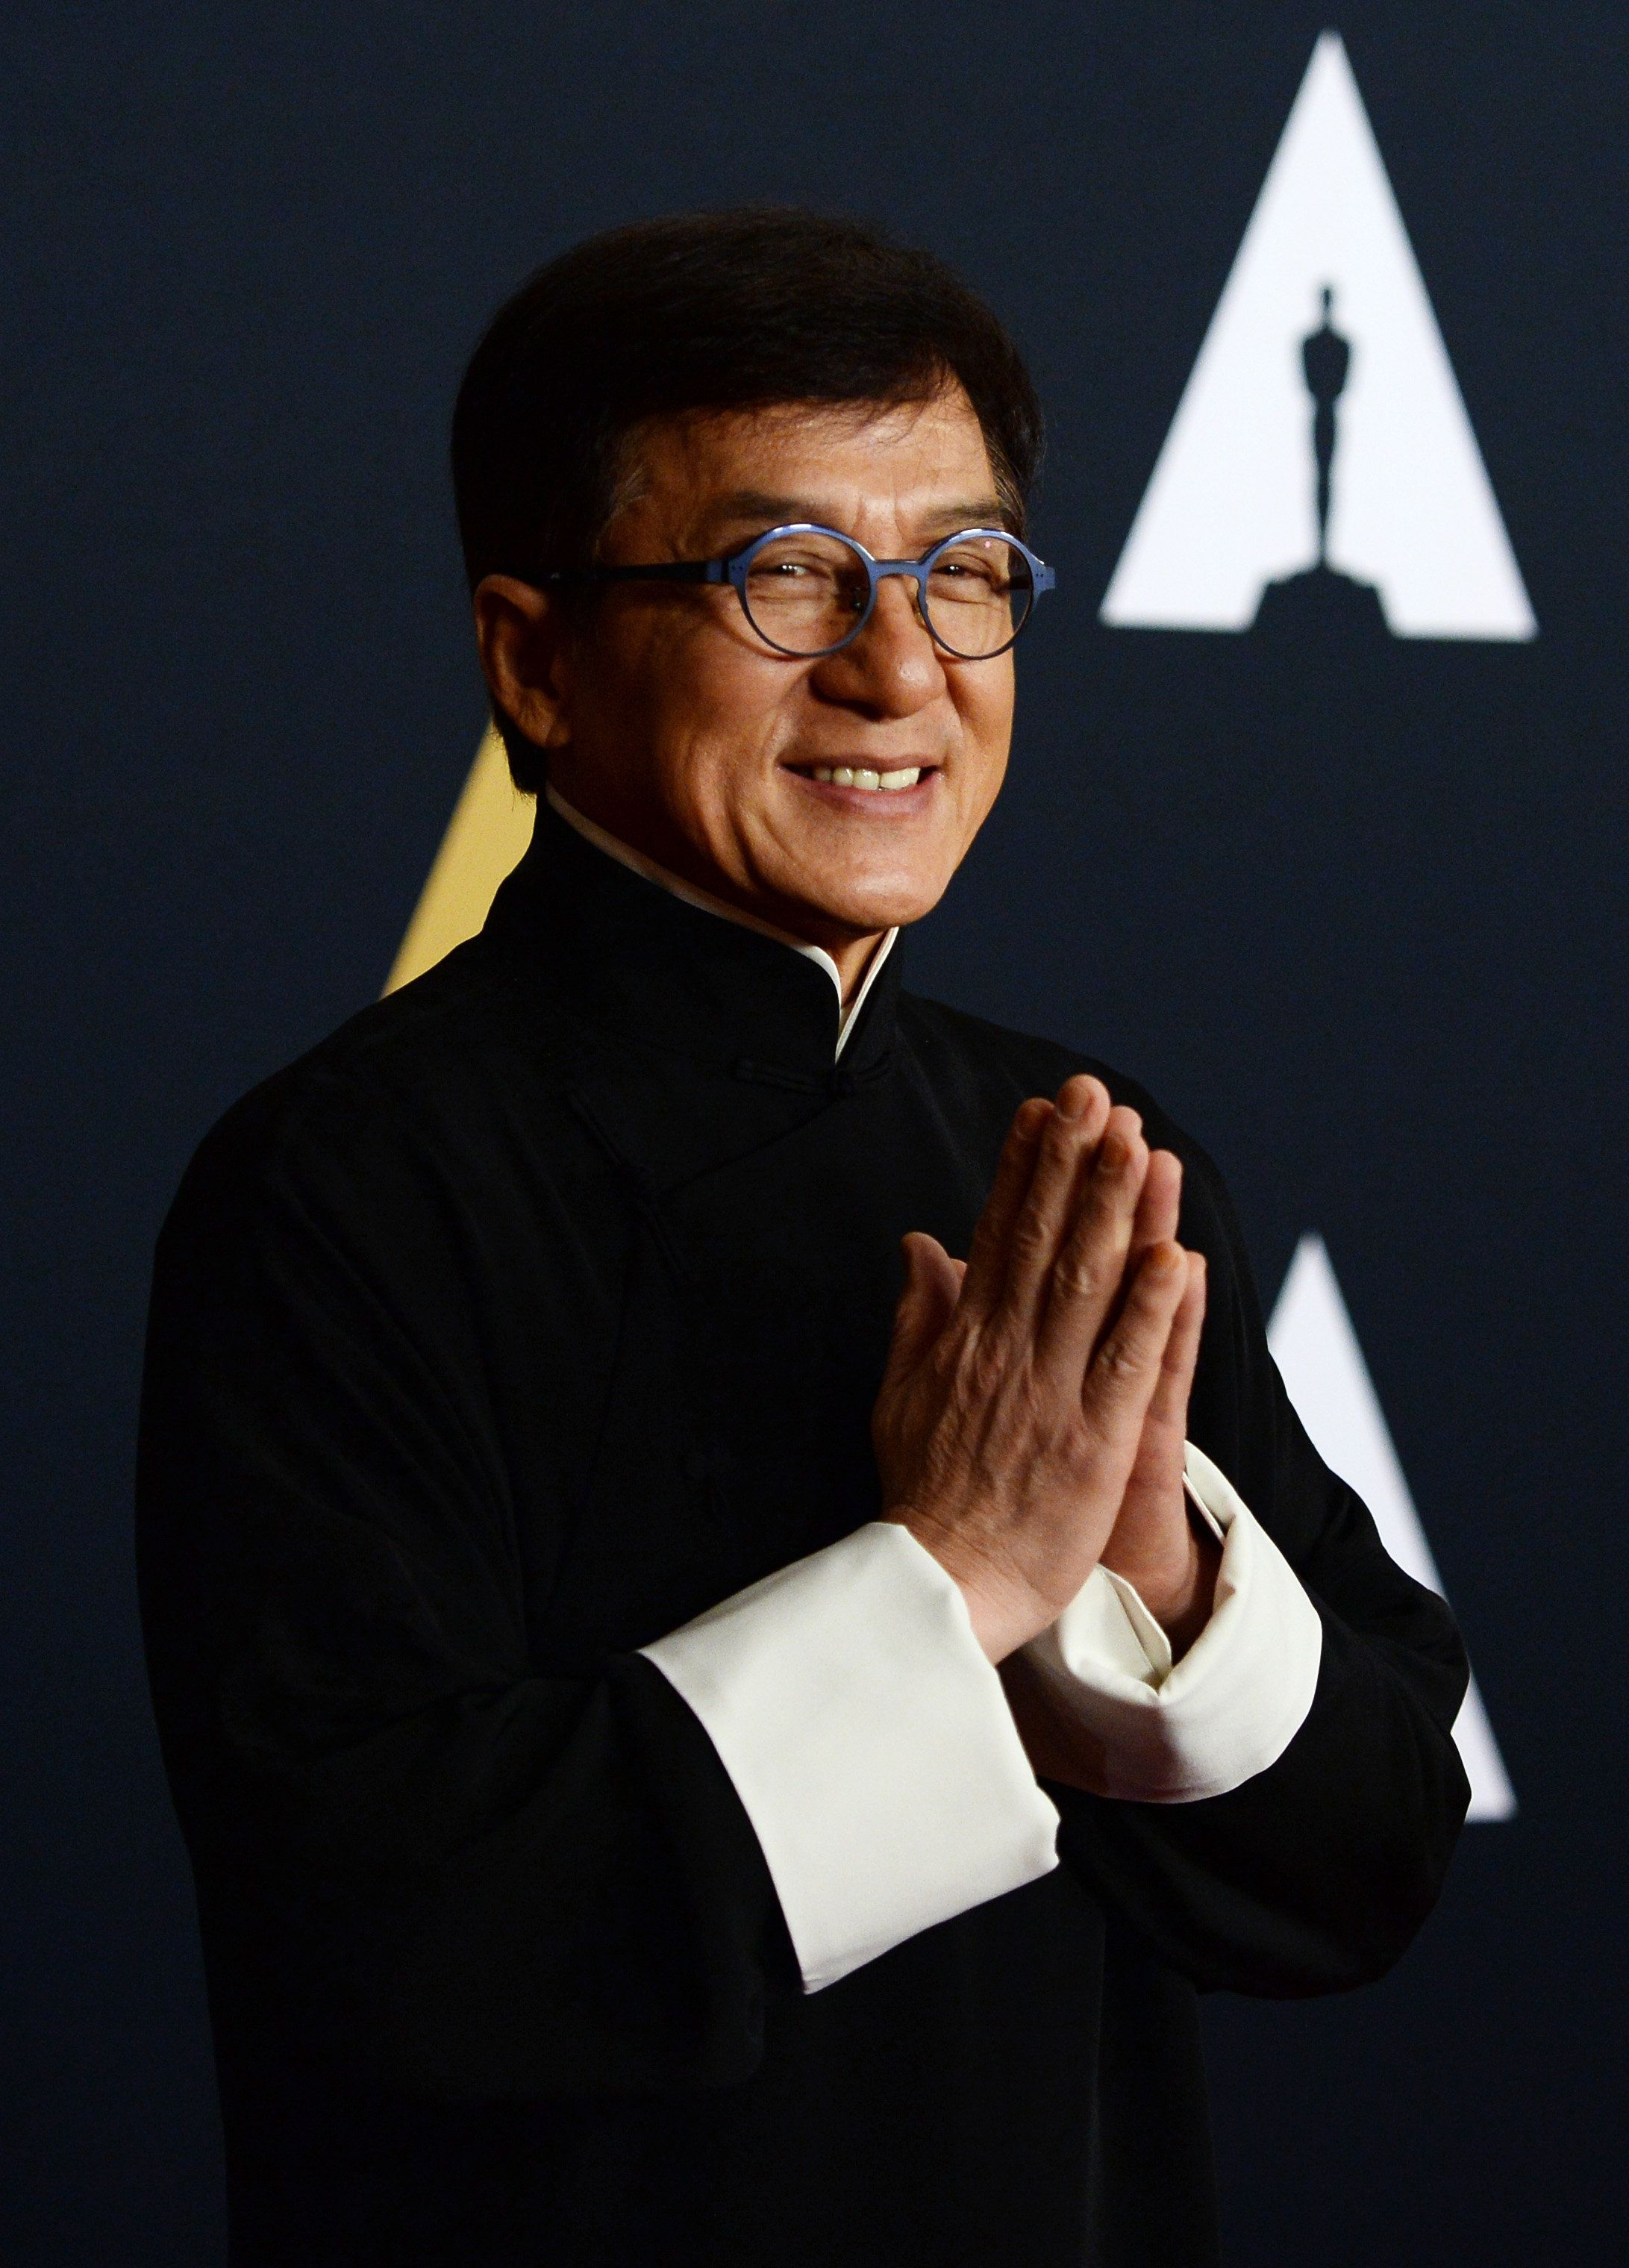 HOLLYWOOD, CA - NOVEMBER 12:  Actor and martial artist Jackie Chan arrives at the Academy of Motion Picture Arts and Sciences' 8th Annual Governors Awards at The Ray Dolby Ballroom at Hollywood & Highland Center on November 12, 2016 in Hollywood, California.  (Photo by Amanda Edwards/WireImage)